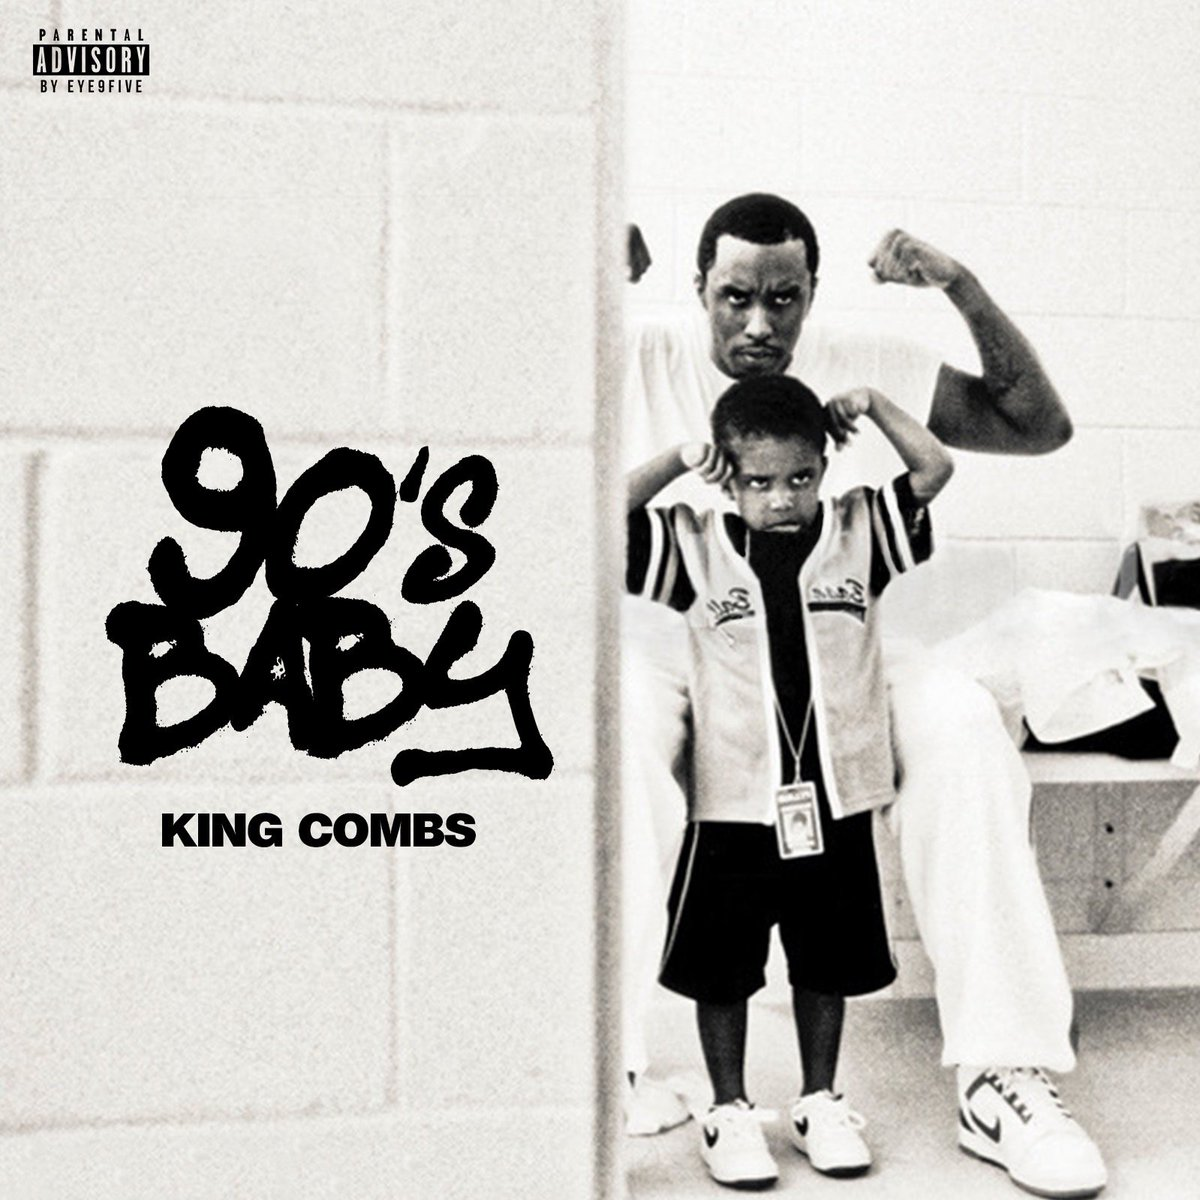 RT @OnSMASH: The debut project from @Kingcombs is out now!  Stream #90sBaby ???? https://t.co/4xnOFSxuZ6 https://t.co/8uqHuwDRPD